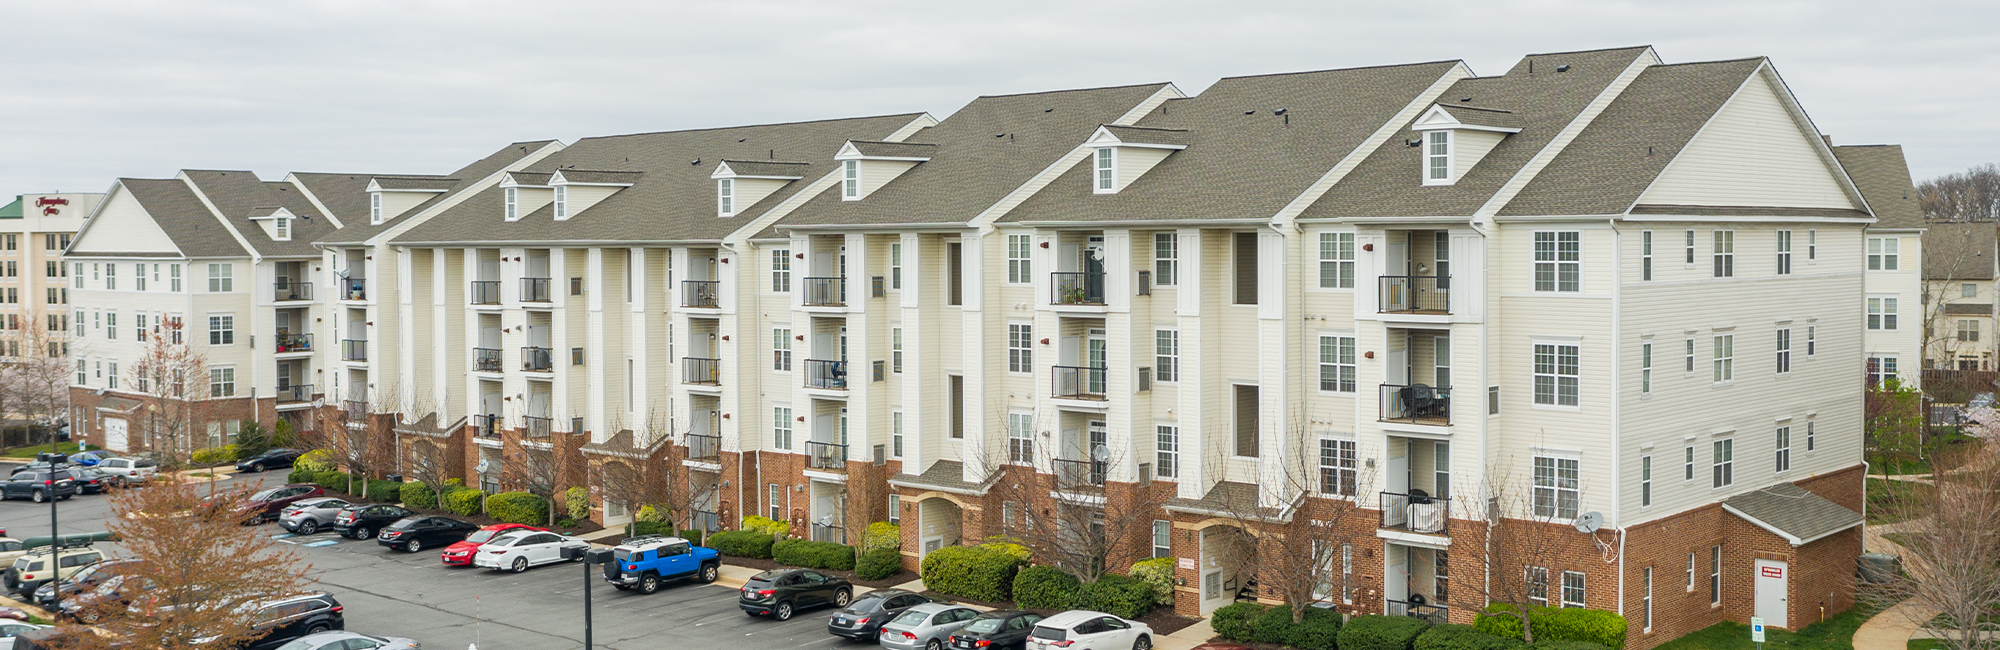 Commons on Potomac Square apartments